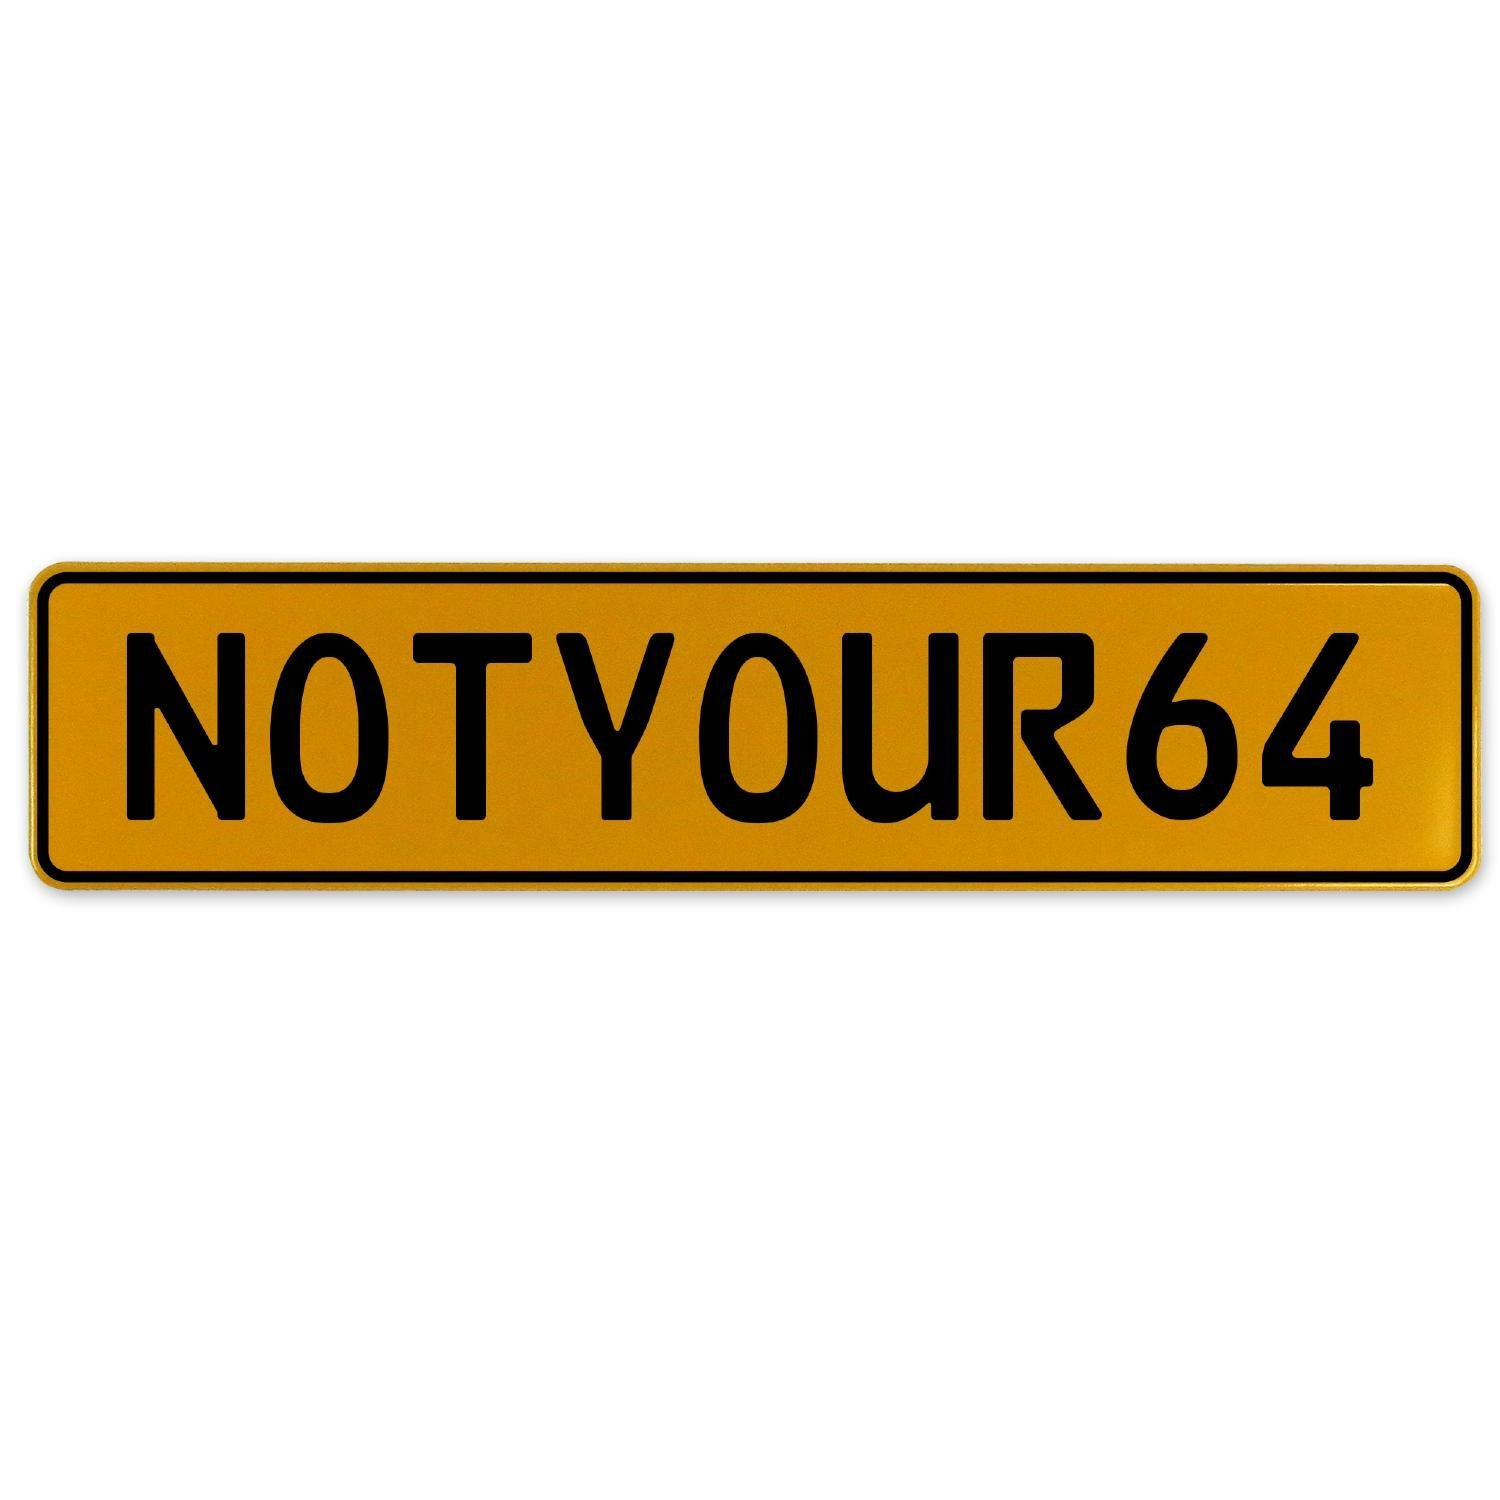 Vintage Parts 560502 NOTYOUR64 Yellow Stamped Aluminum European Plate